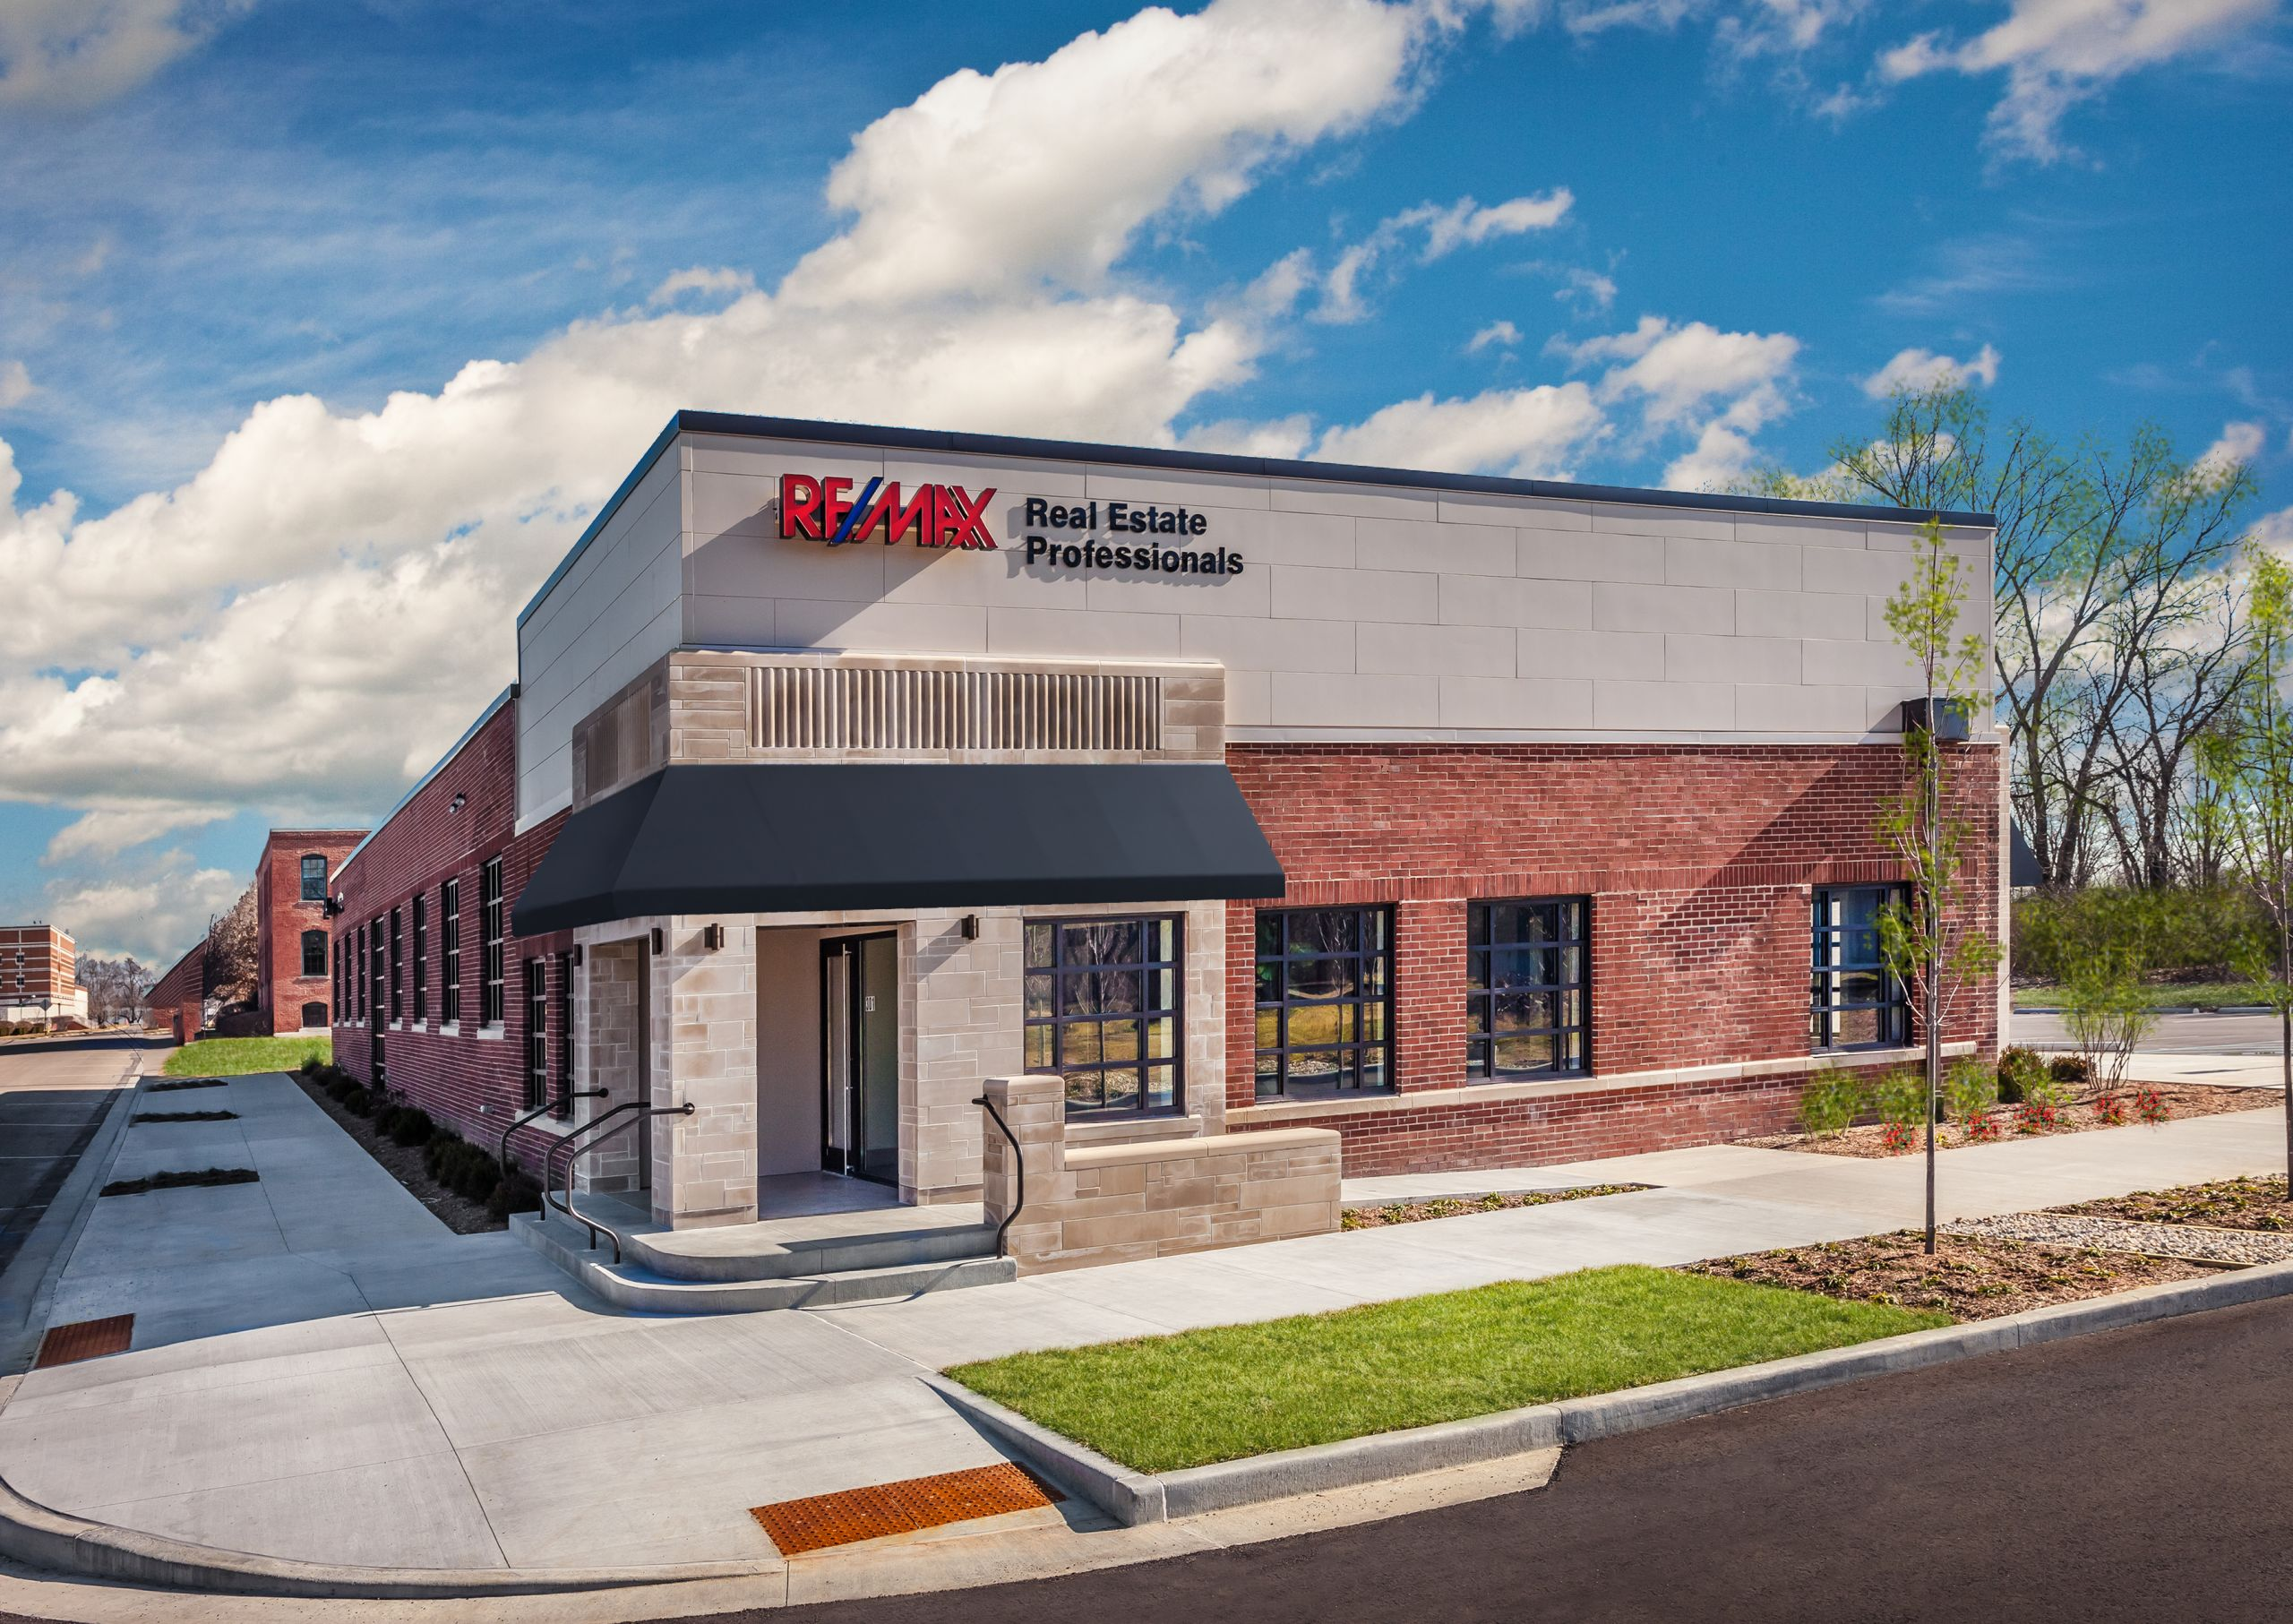 Re/Max Real Estate Professionls Office at 301 1st Street